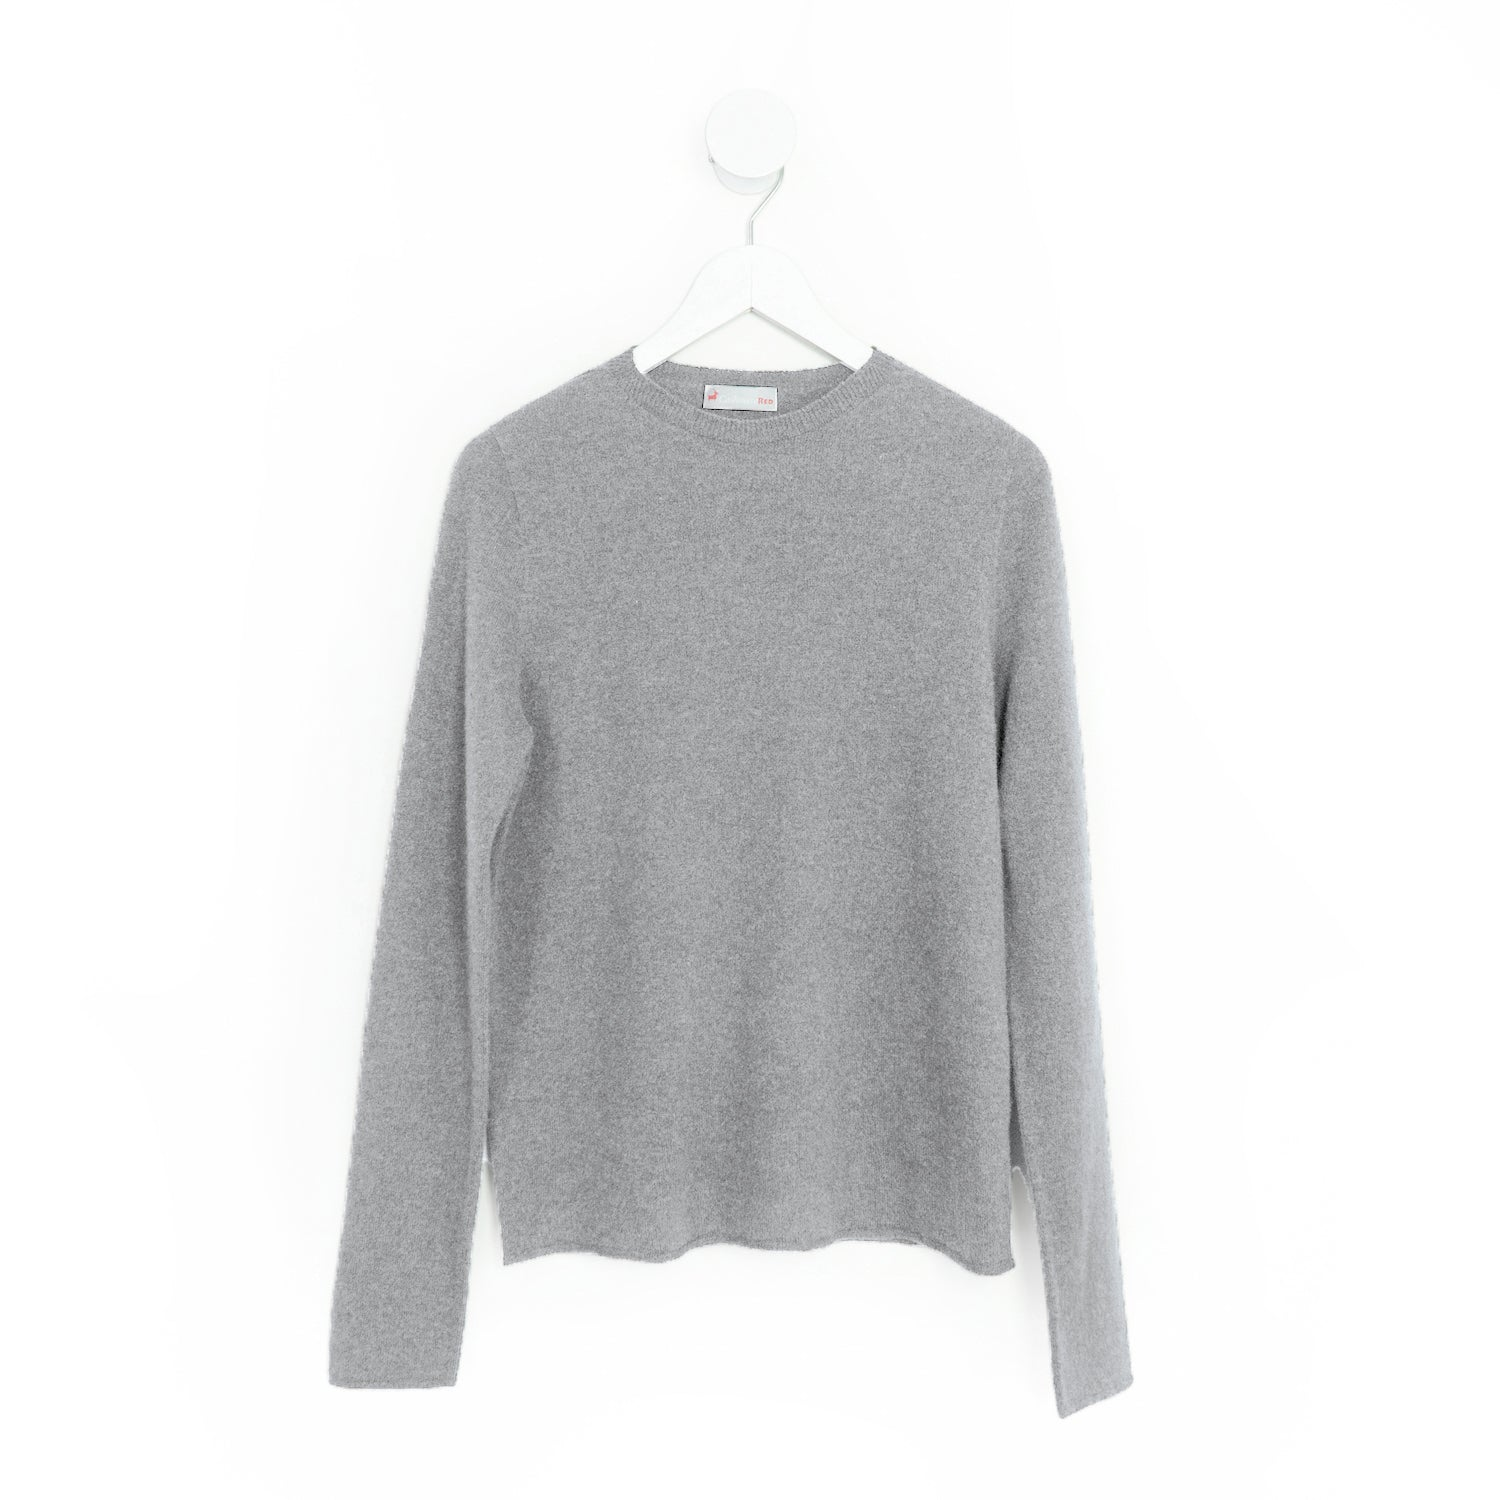 Knit to Order Easton All-Gender Crew Neck